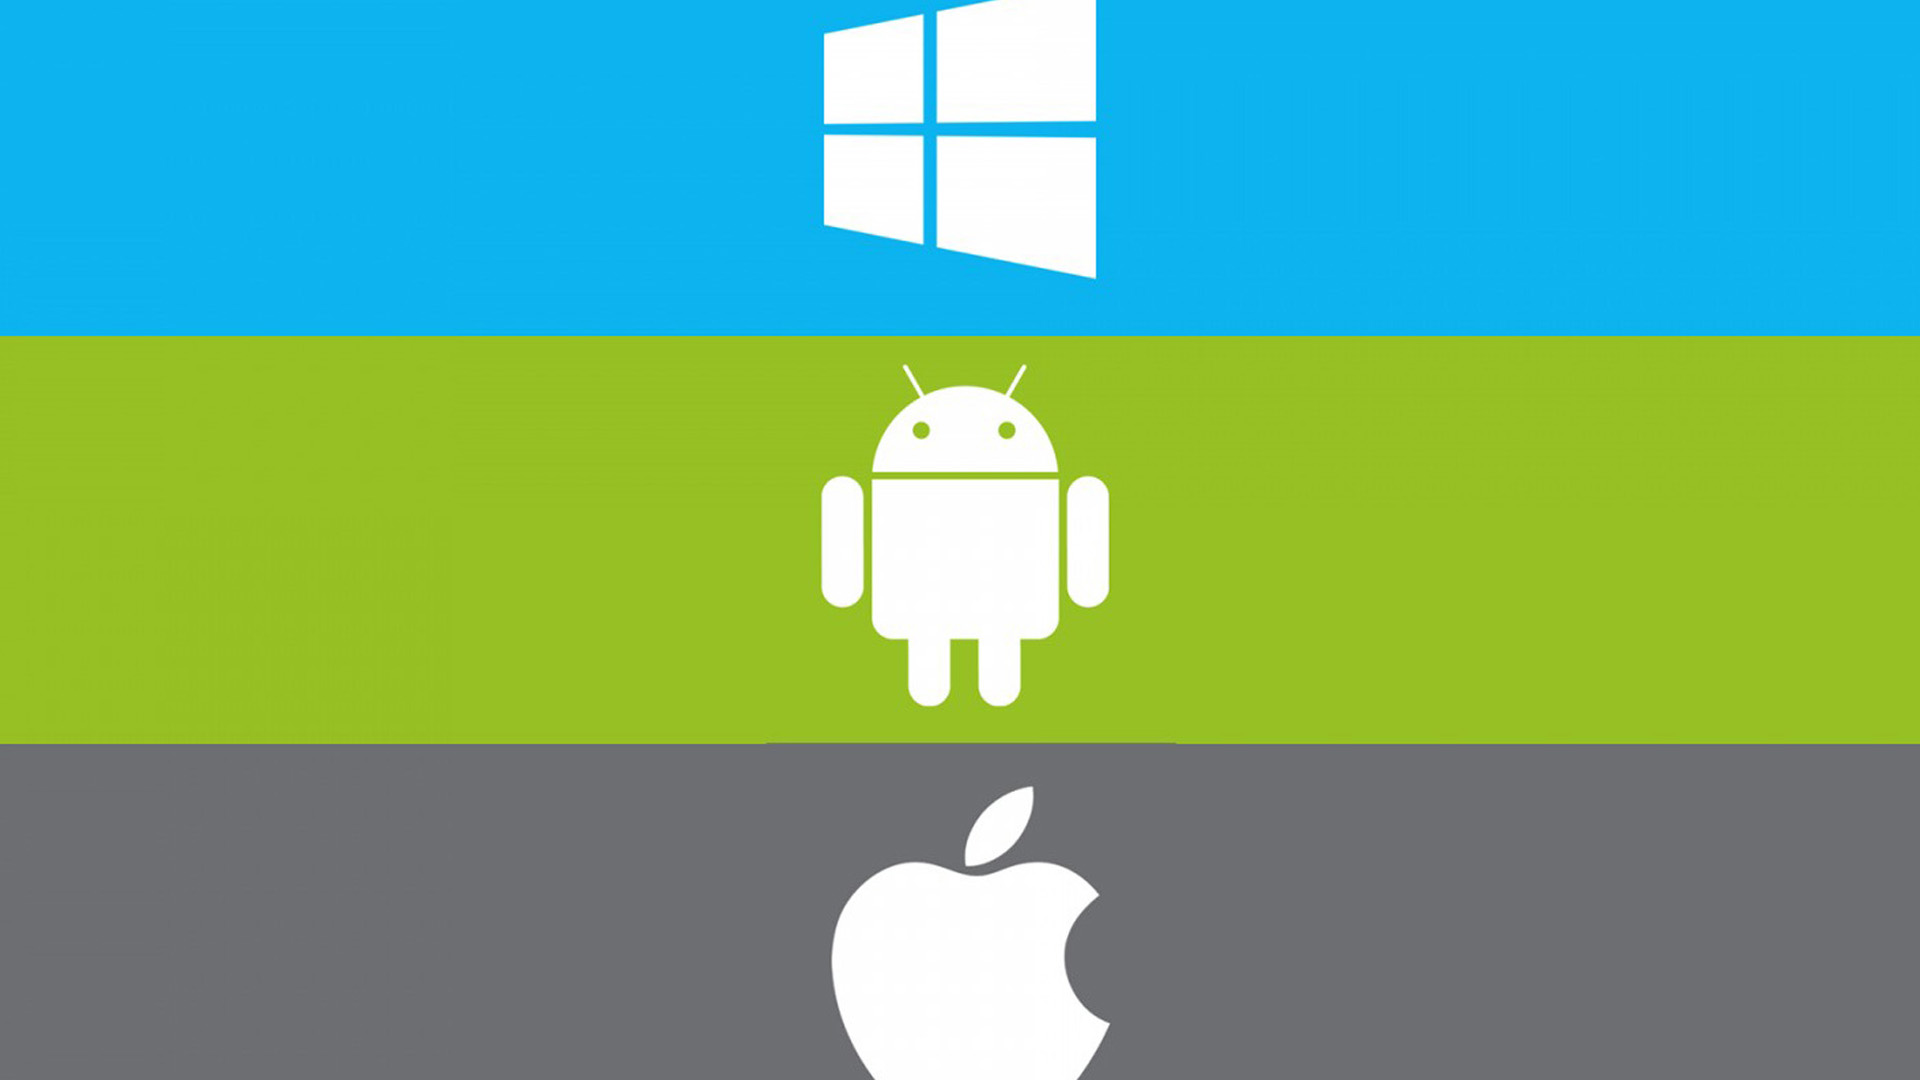 Apple Microsoft Wallpaper